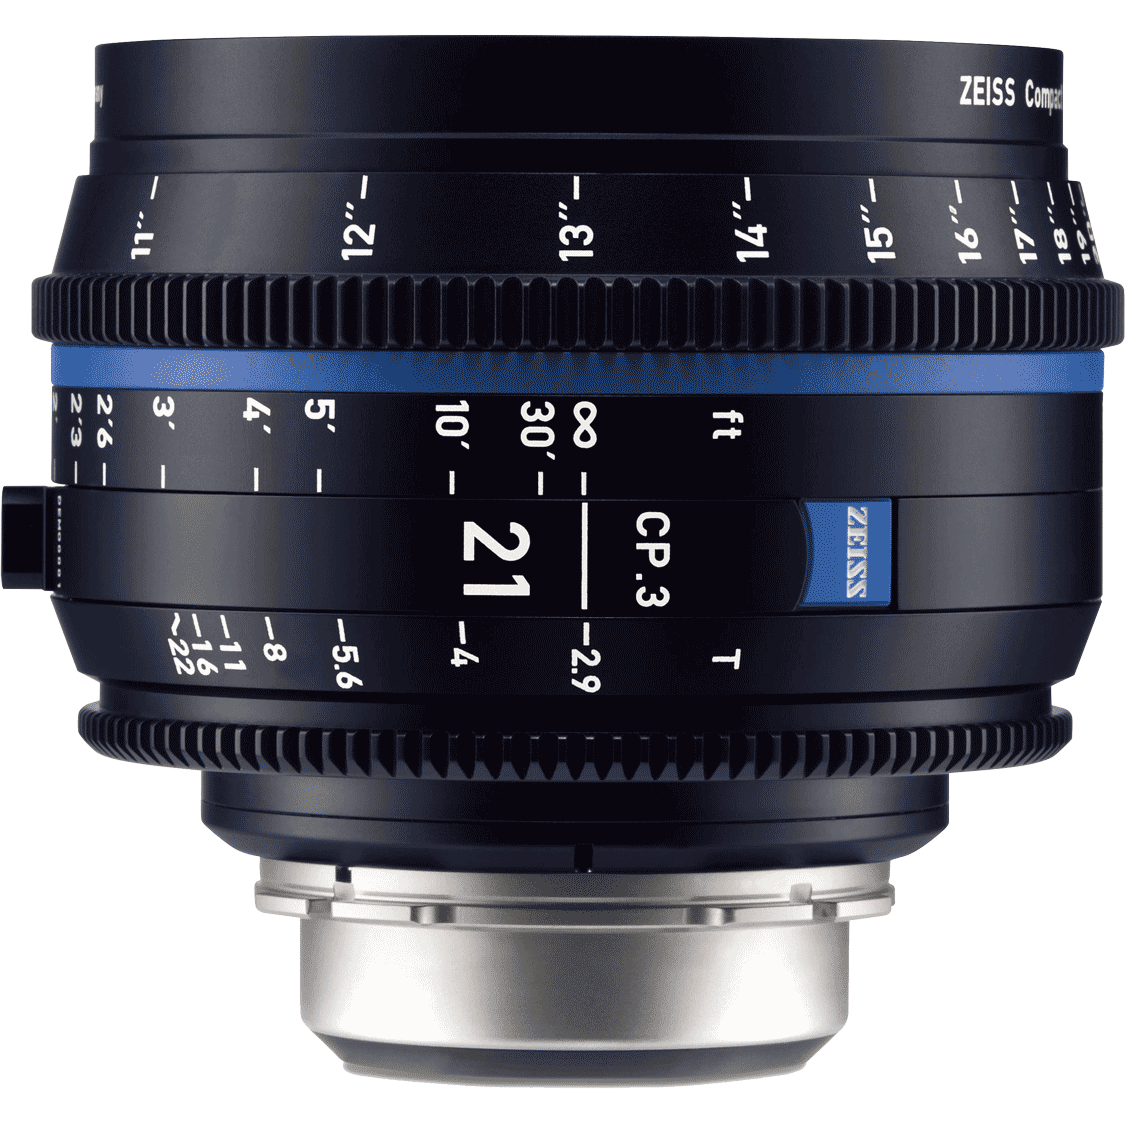 zeiss_cp3_21_lens.png